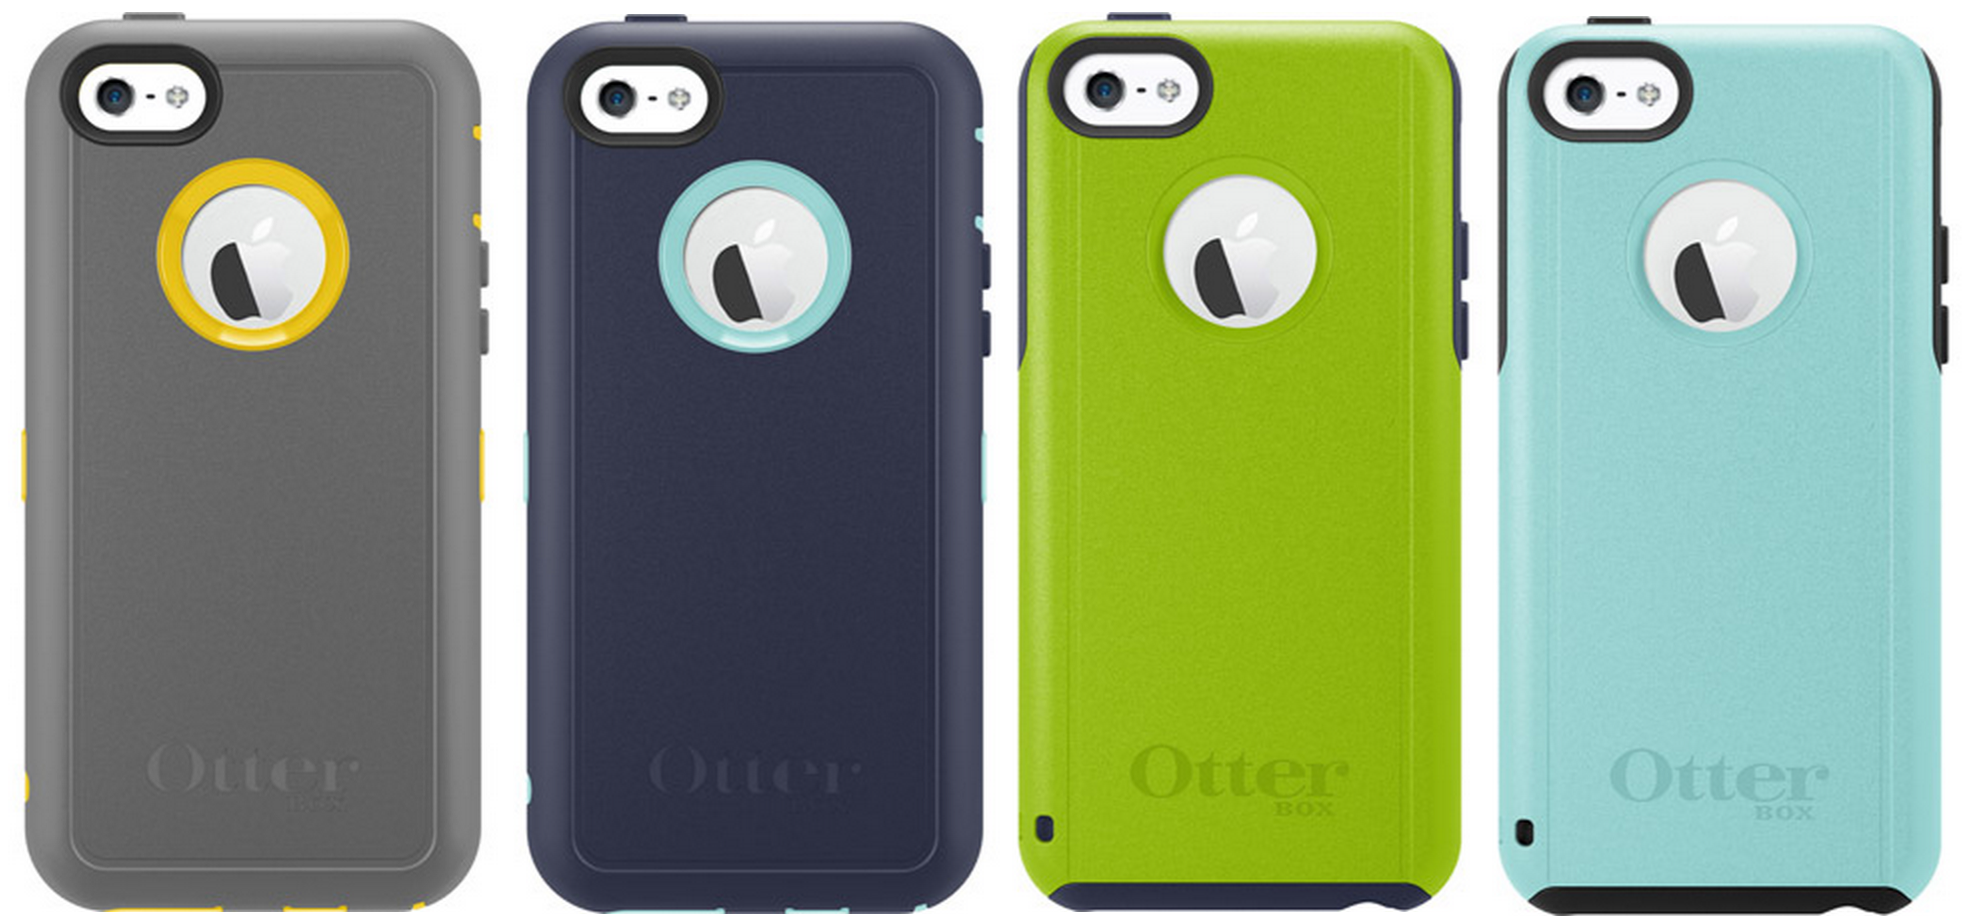 Otterbox-iPhone-5c-cases